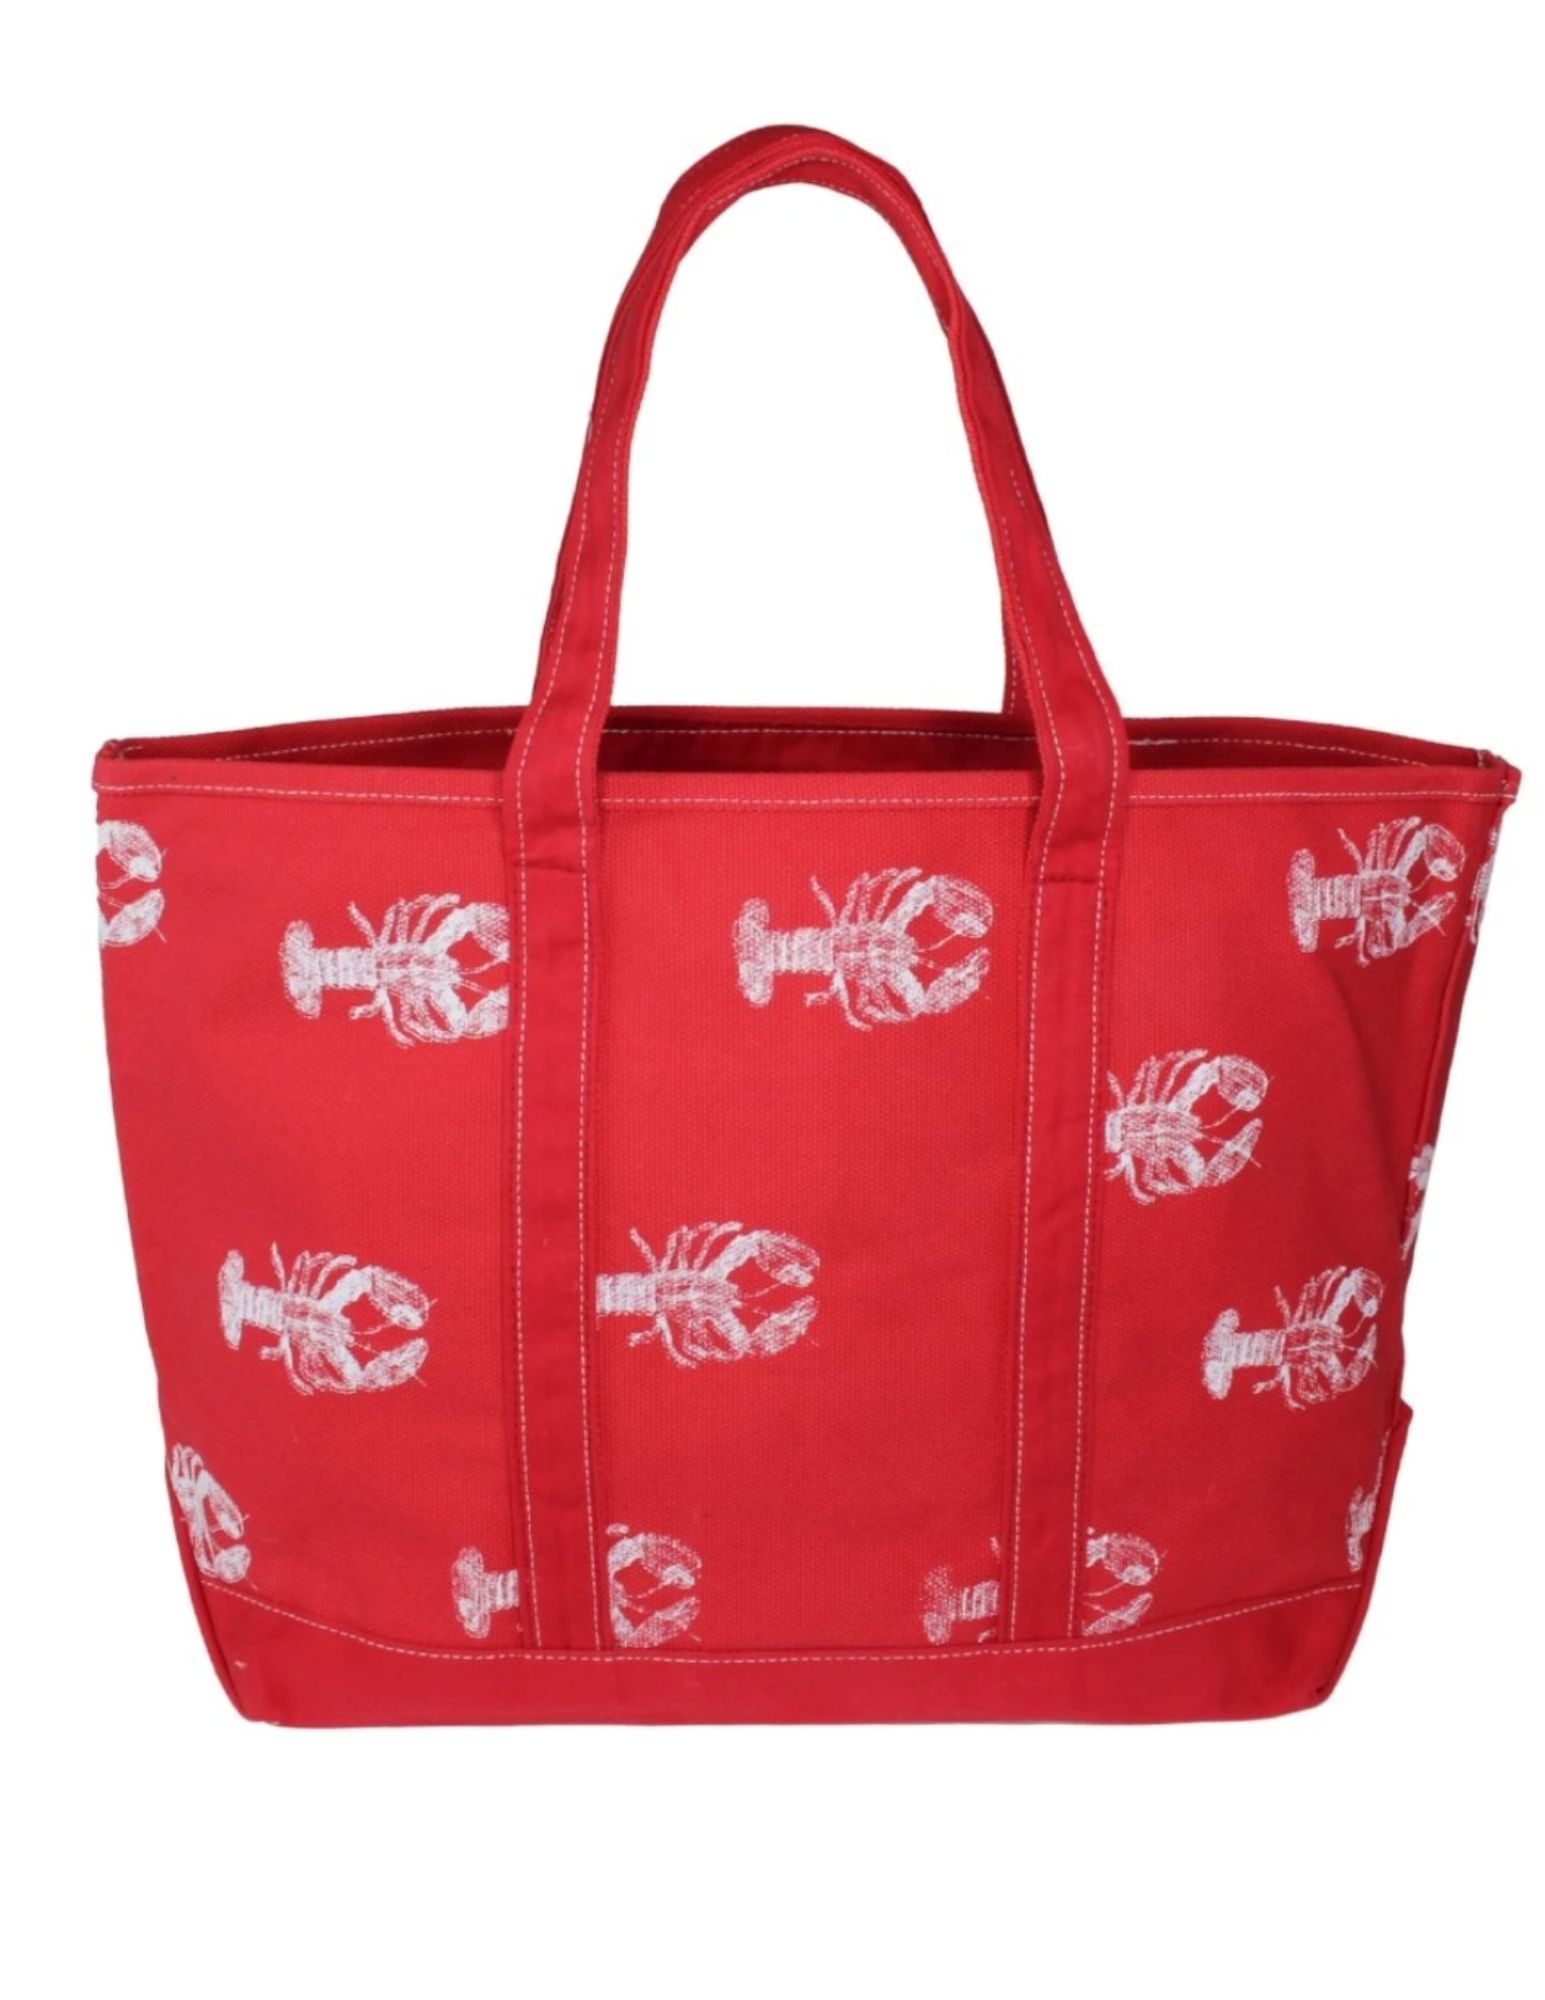 It's in the bag with this Crab and Cleek tote